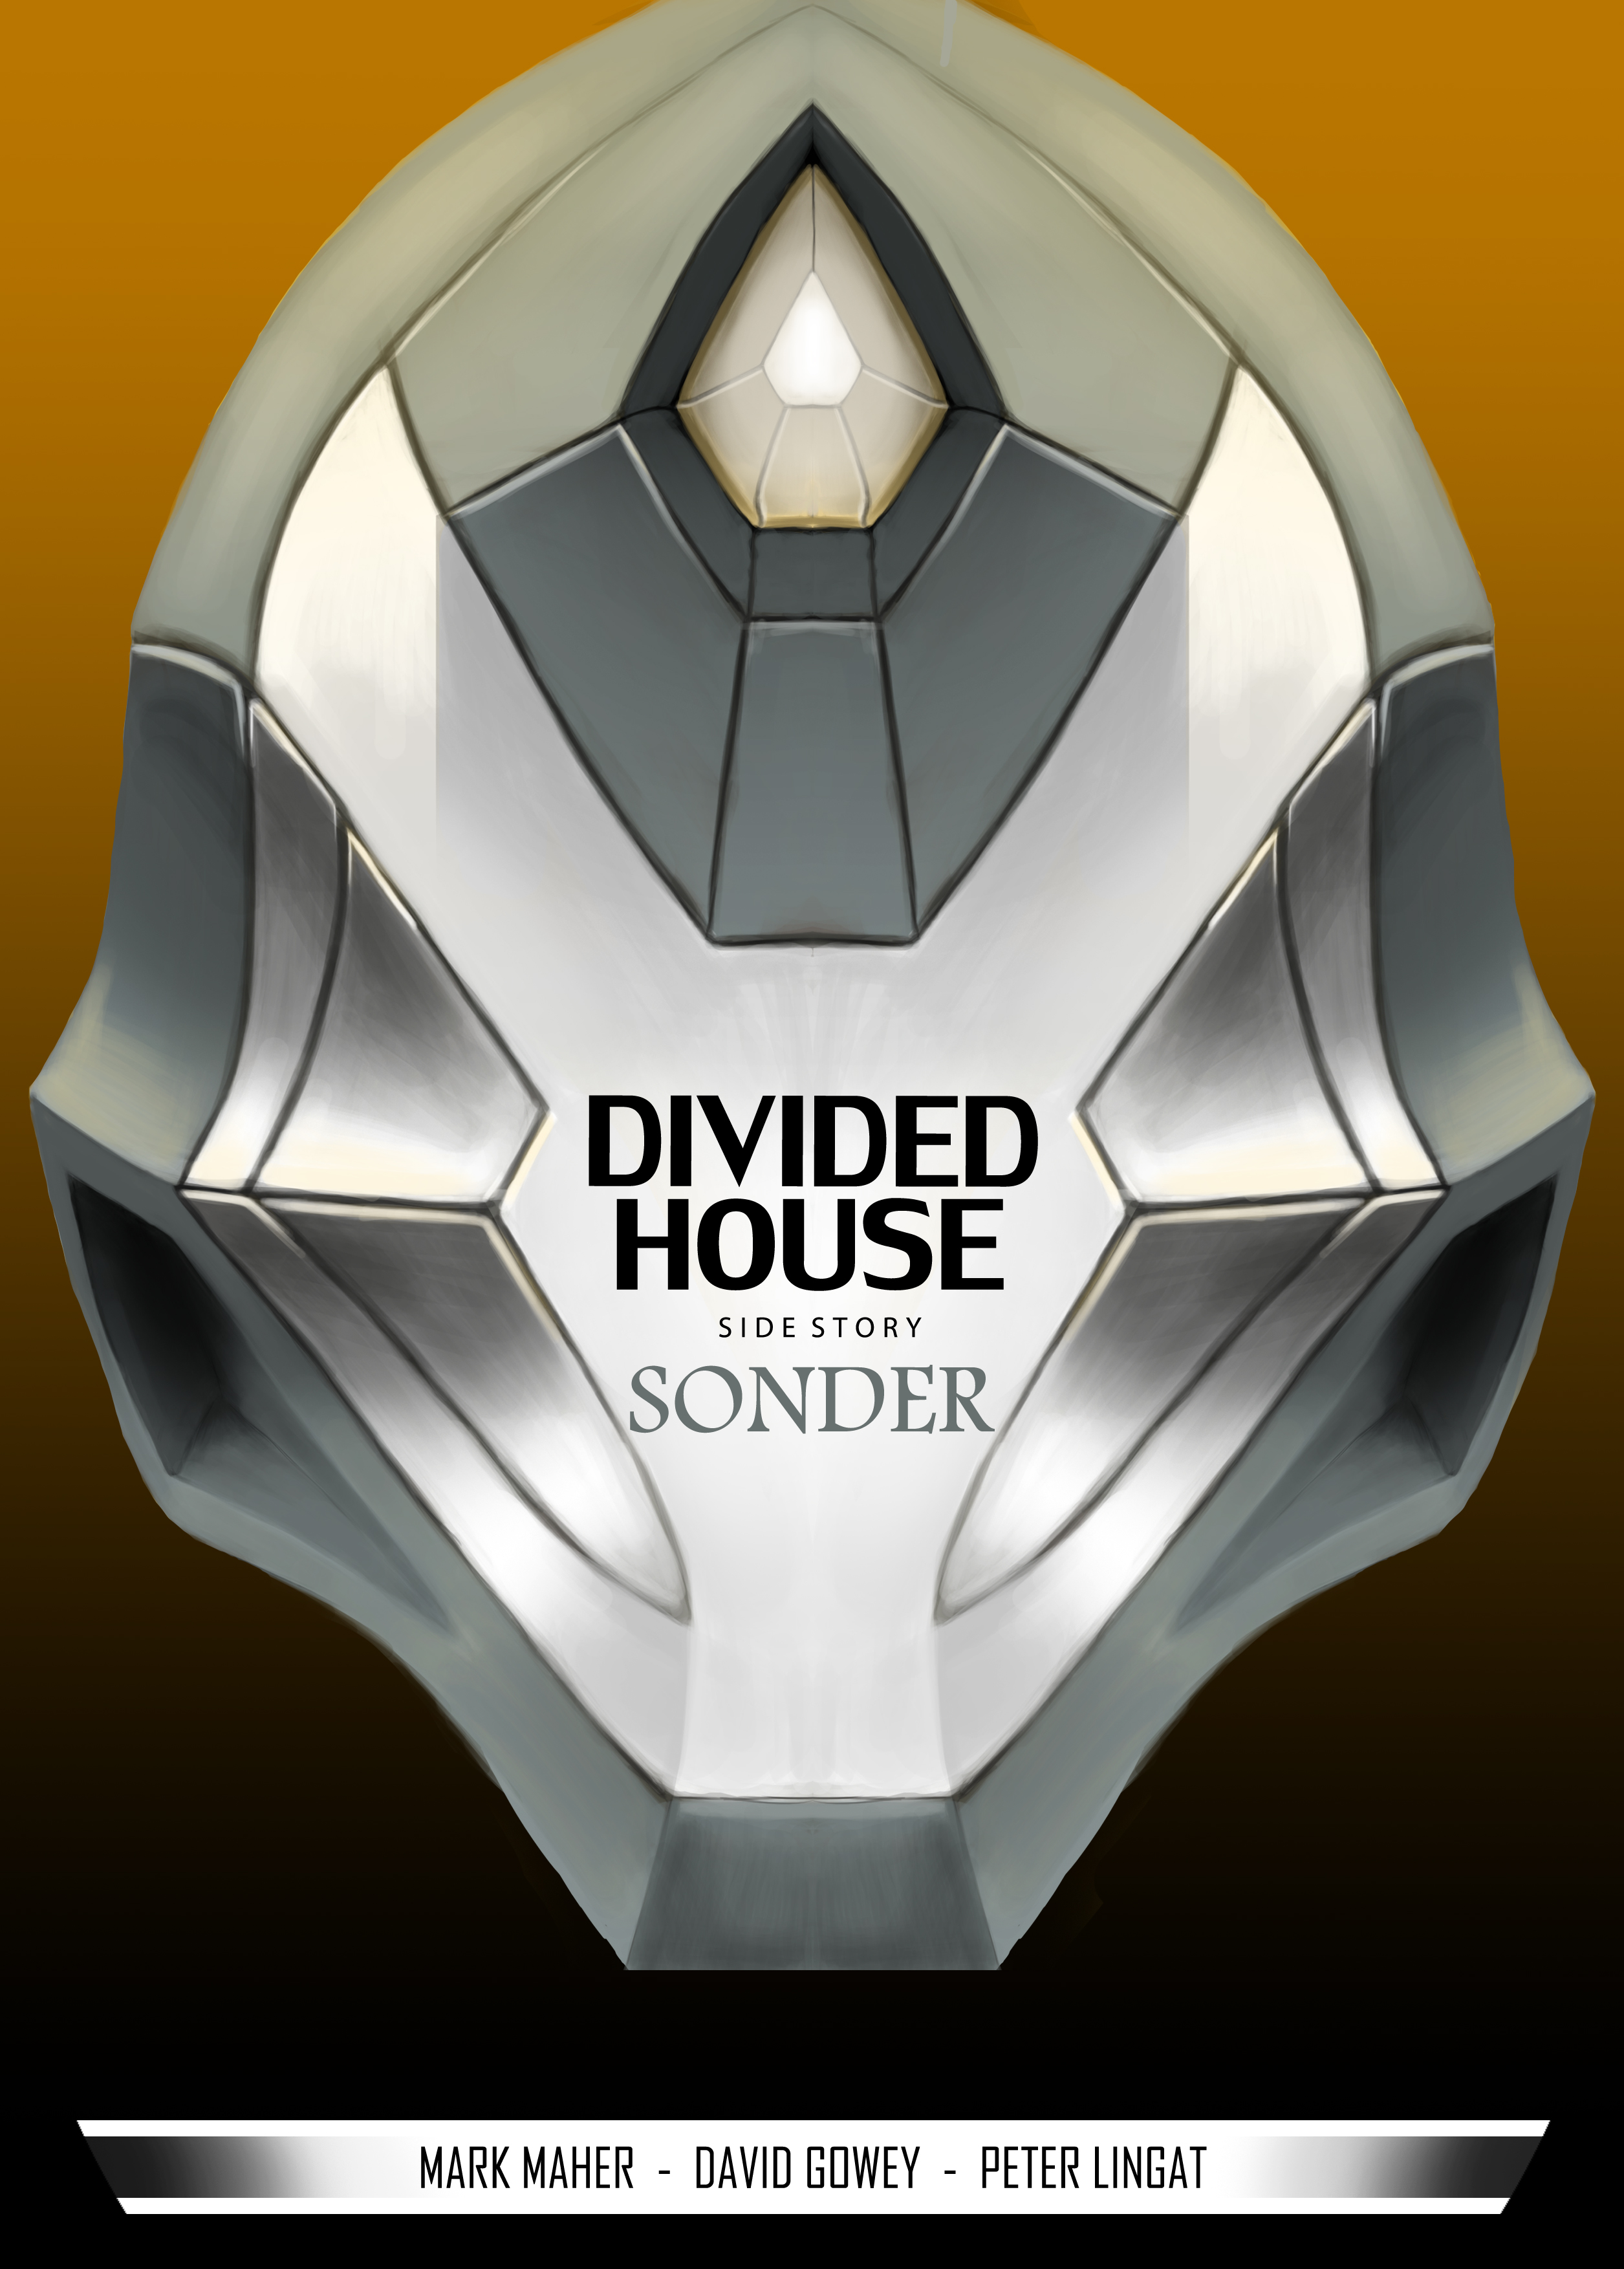 Divided house - Sonder cover.